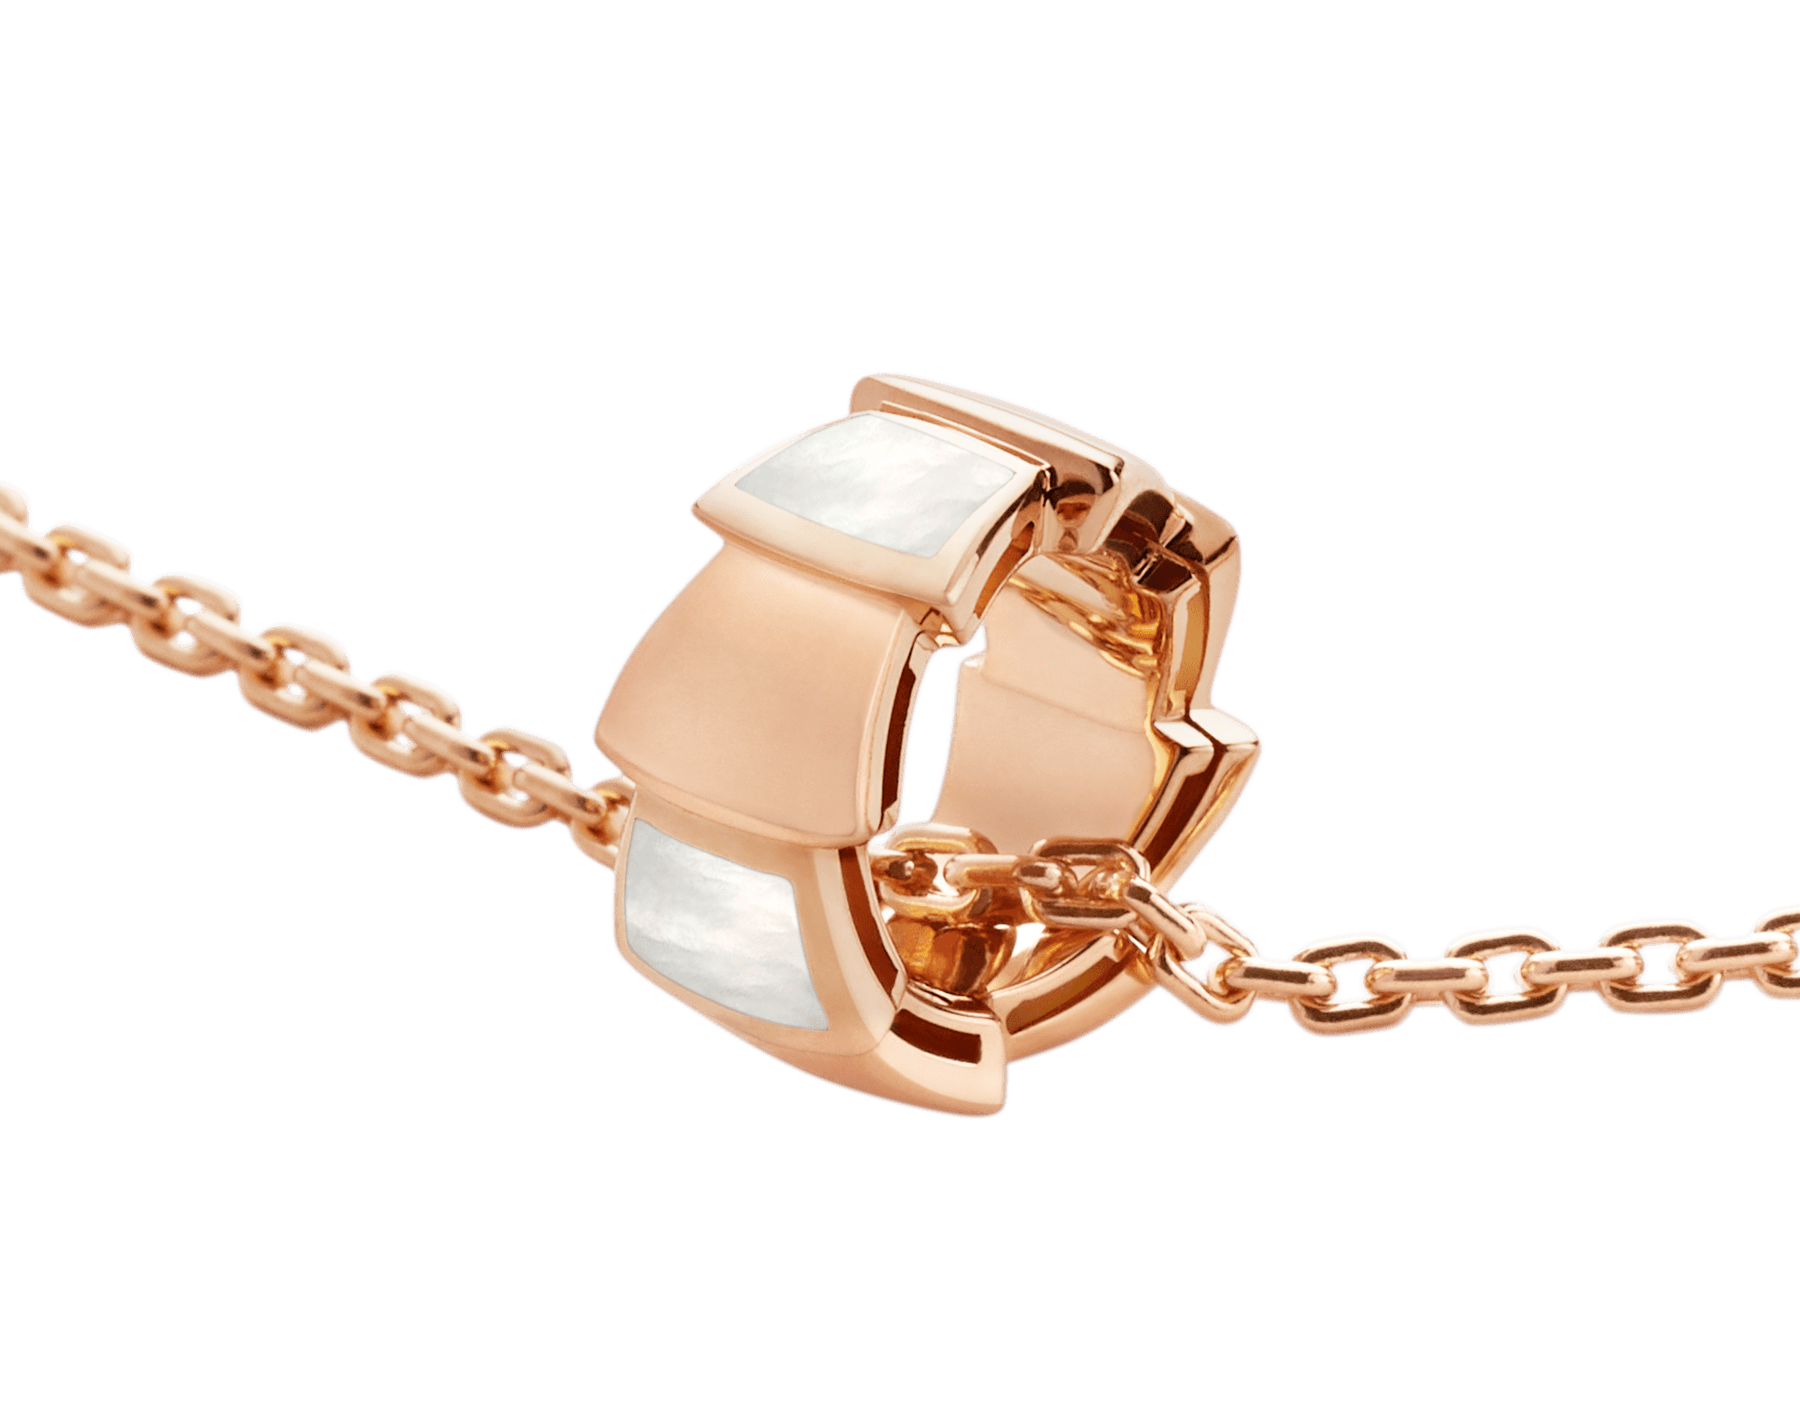 Serpenti 18 kt rose gold necklace with pendant set with mother-of-pearl elements 355795 image 3